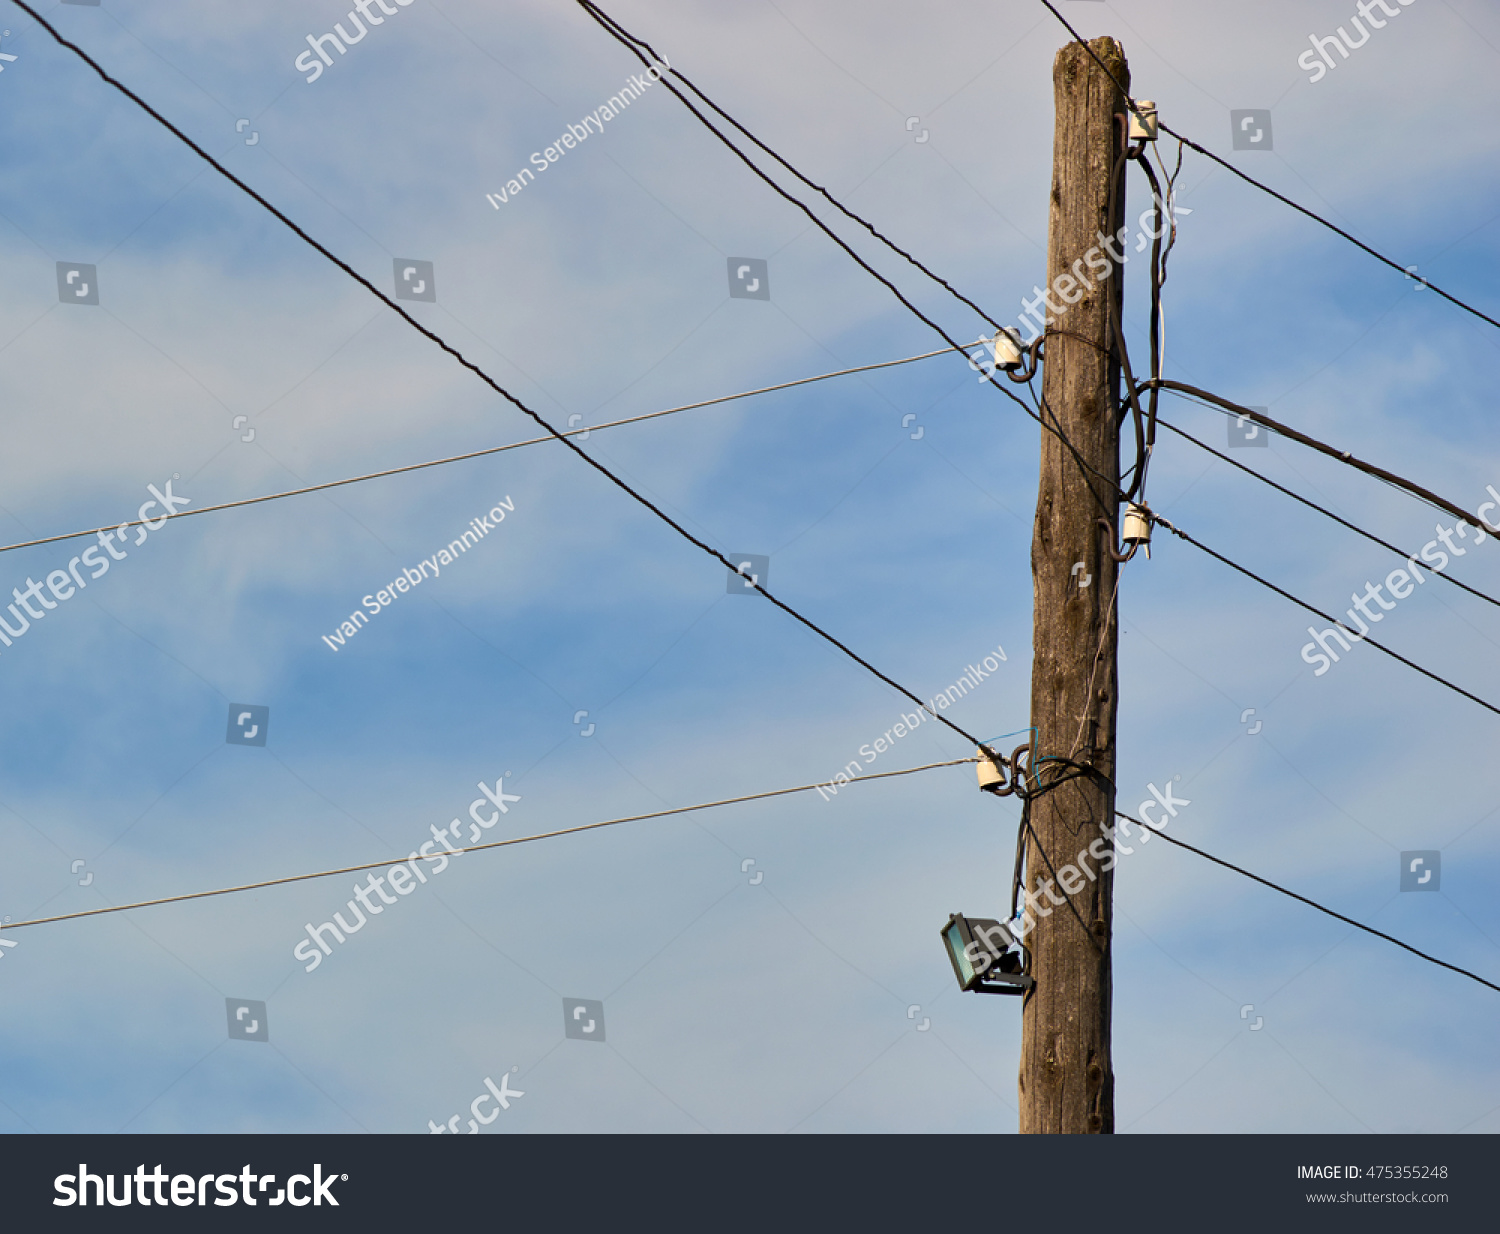 hight resolution of old pole with lamp and wires sky and clouds